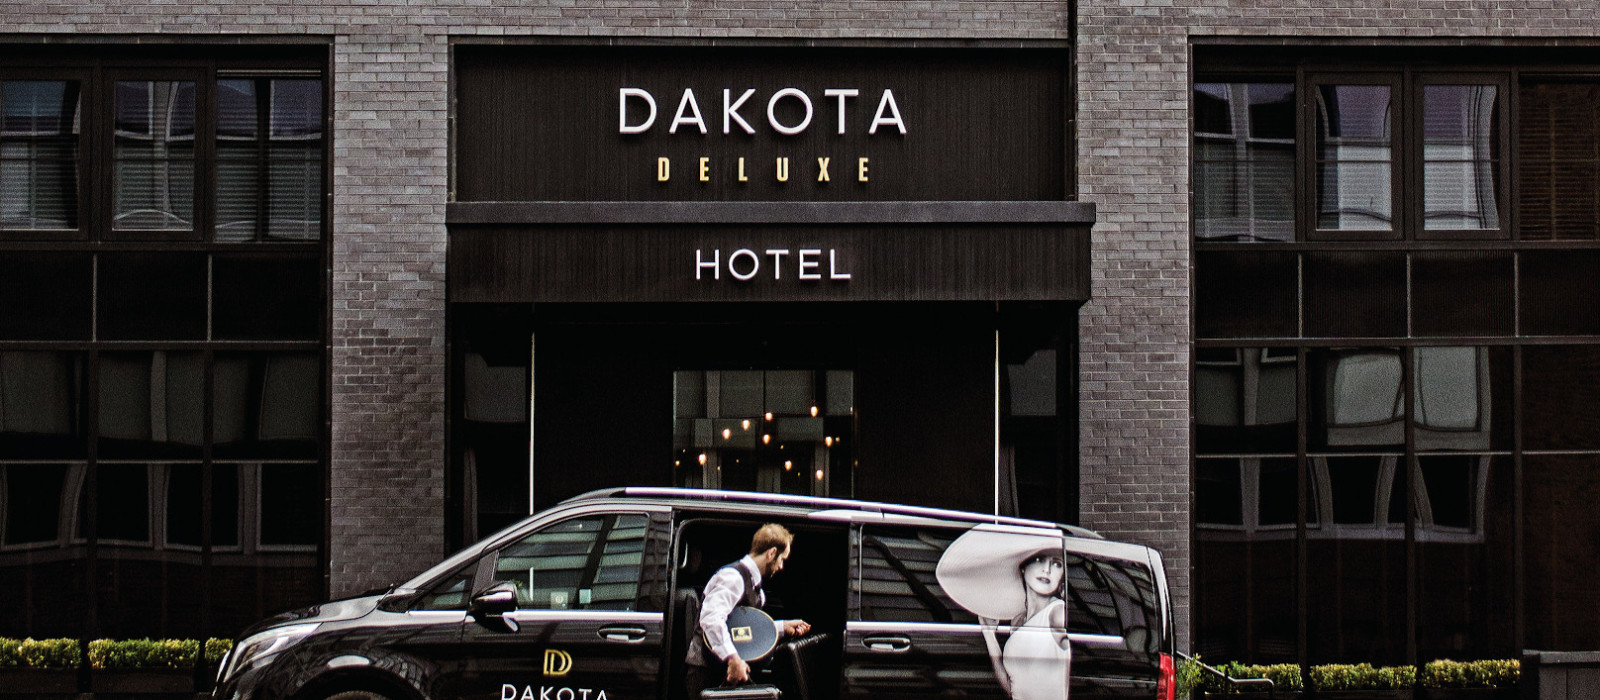 Hotel Dakota Glasgow UK & Ireland